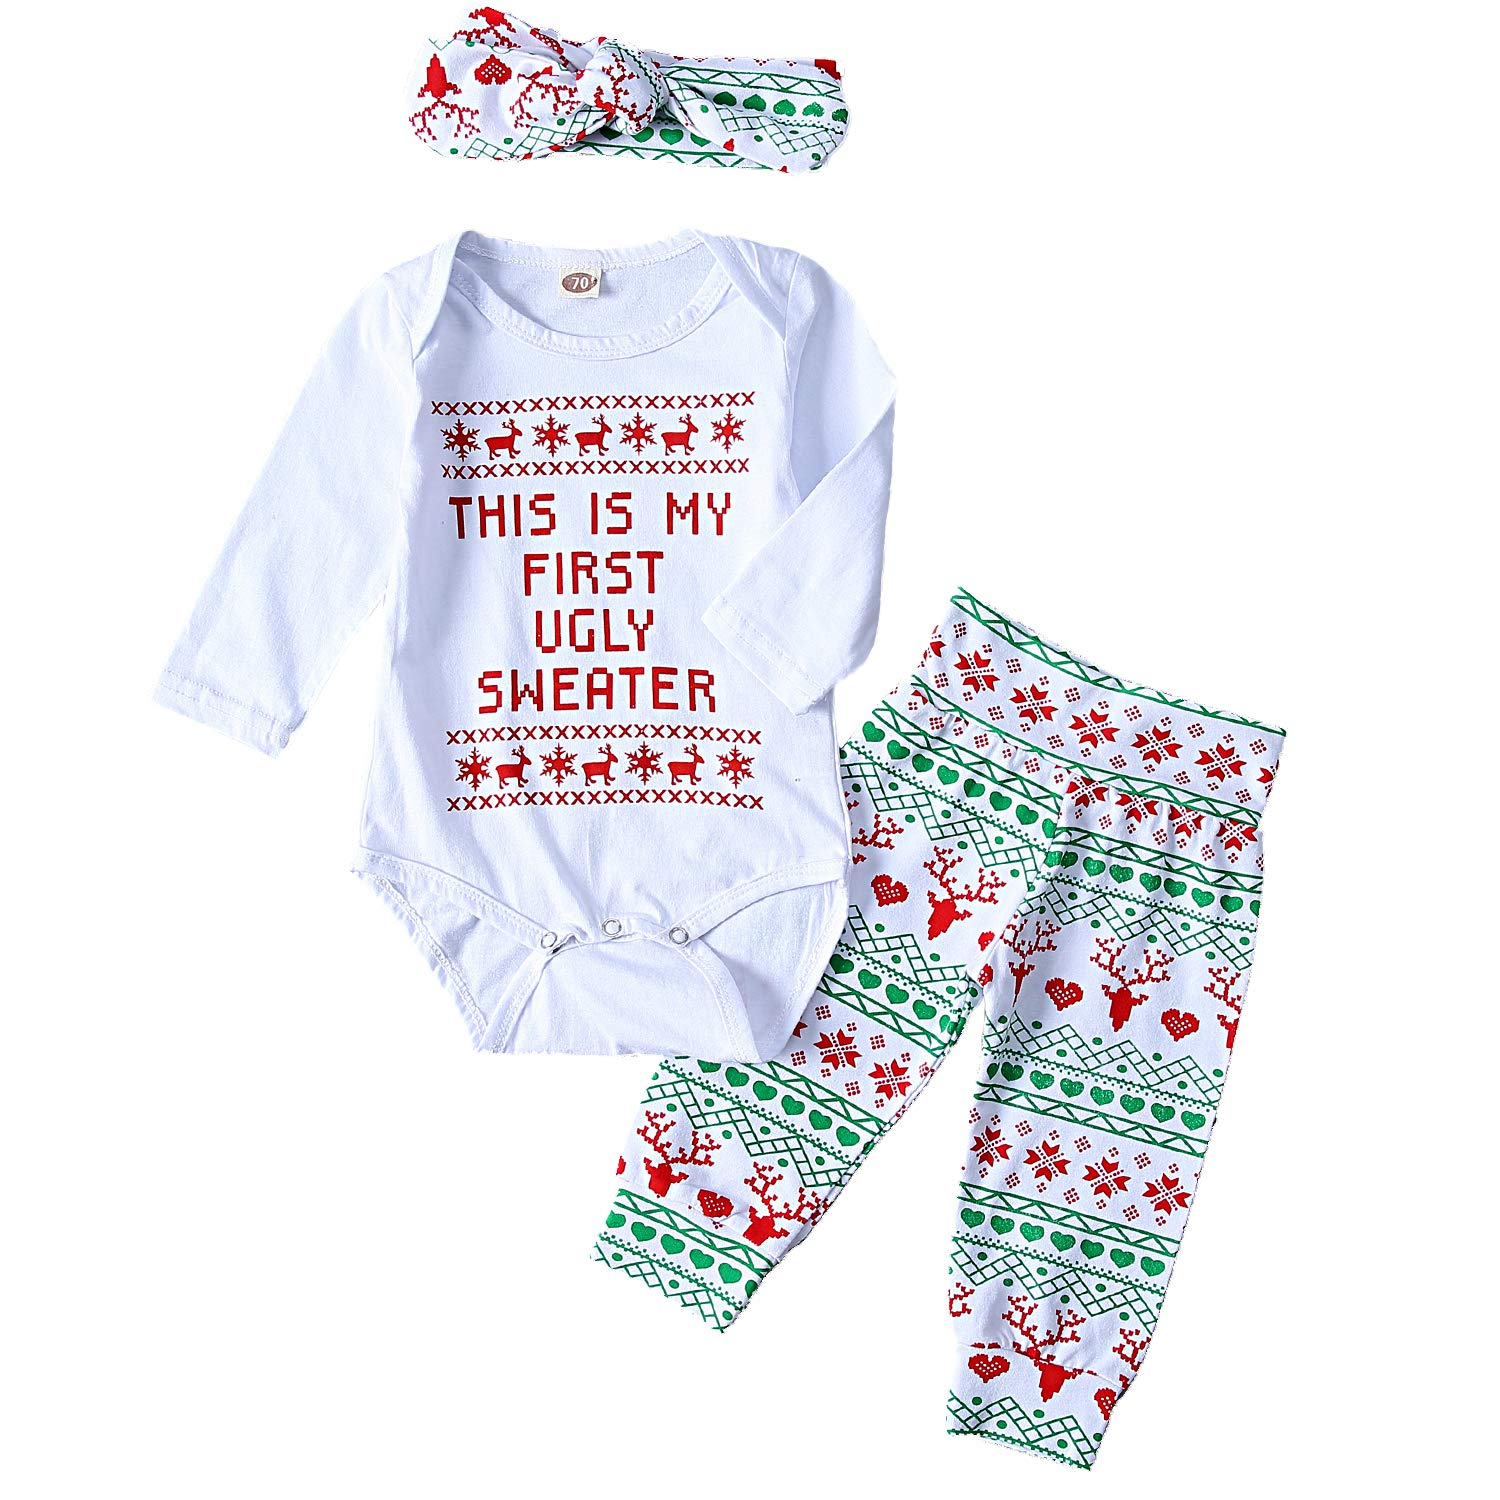 3Pcs Infant Baby Girls Boys Christmas Outfits Long Sleeve Deer Letter Print Clothes Set White)